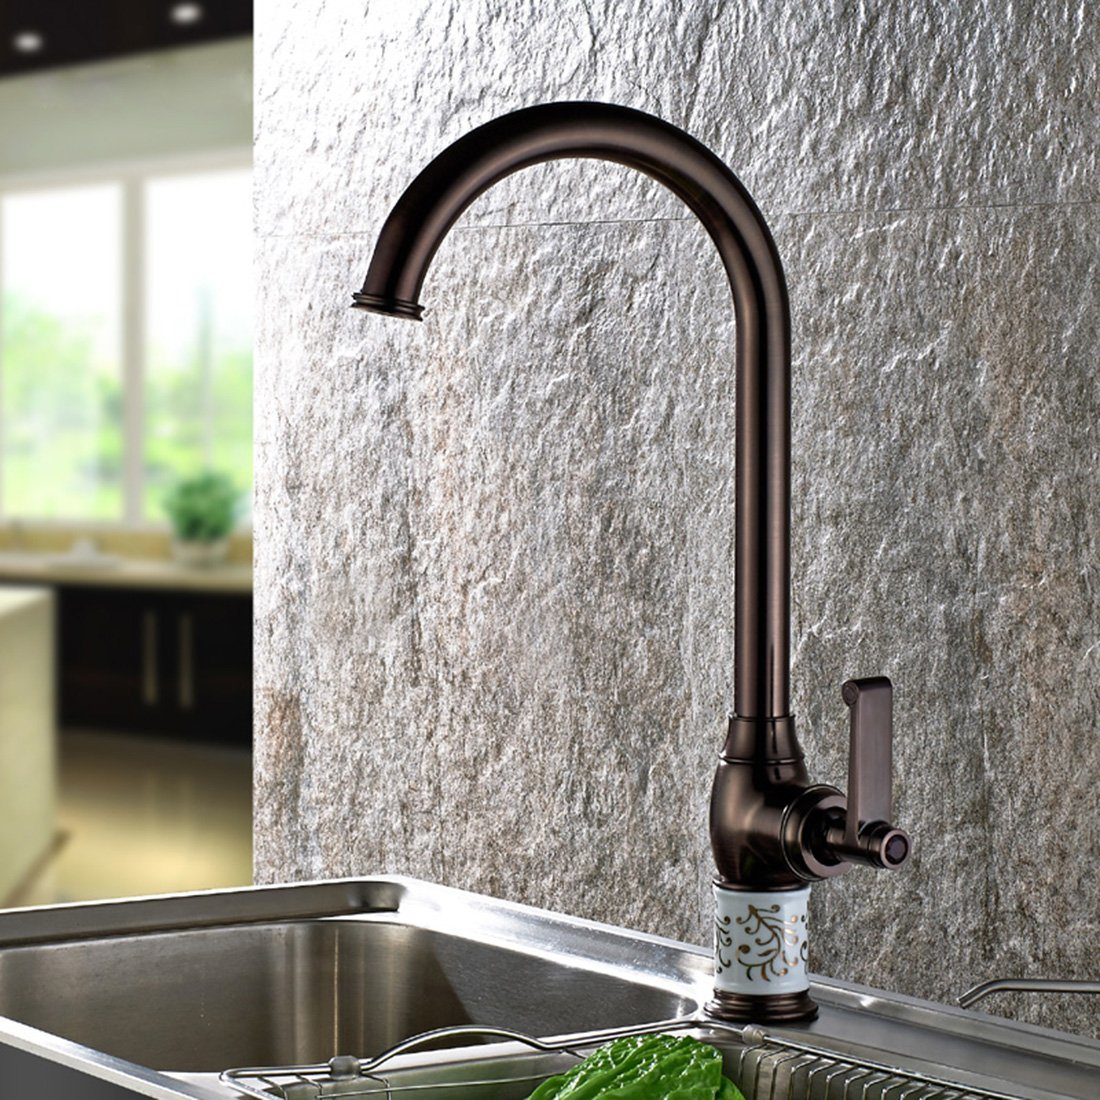 Hot Item Flg Oil Rubbed Bronze Kitchen Sink Faucet Deck Mounted